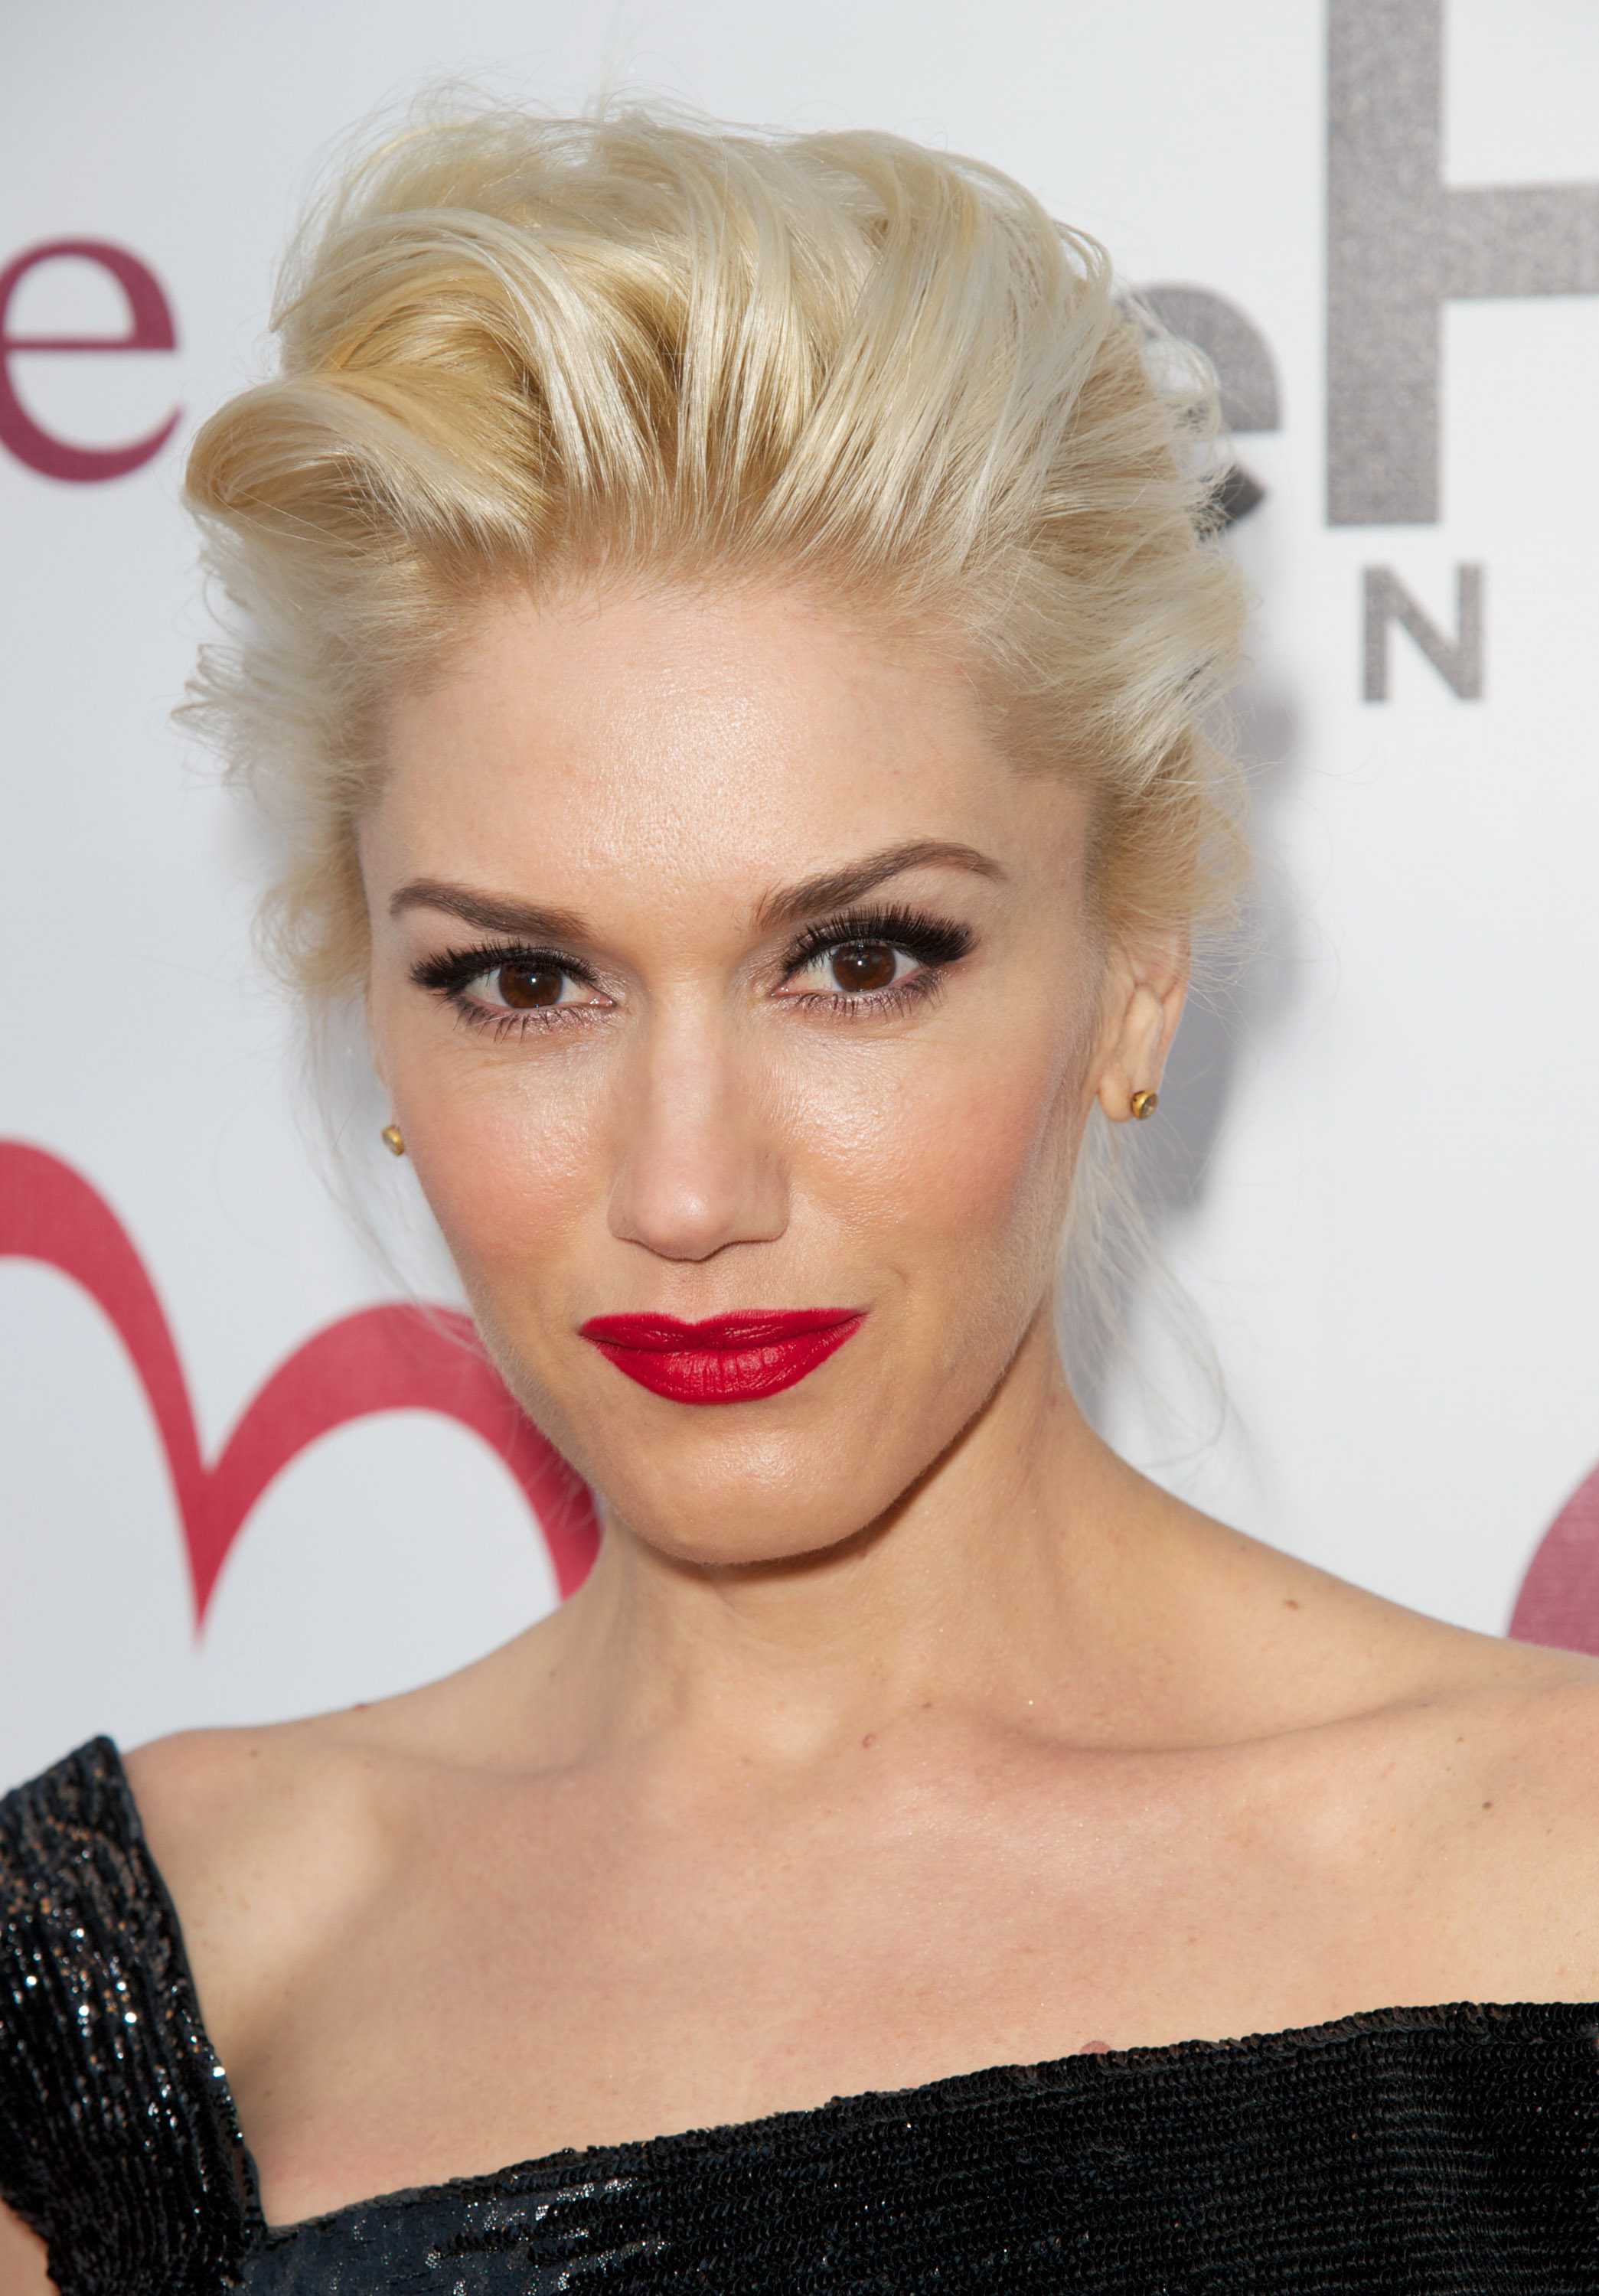 Gwen Stefani Cool Video Hair Gwen Stefani Hairstyle Cool